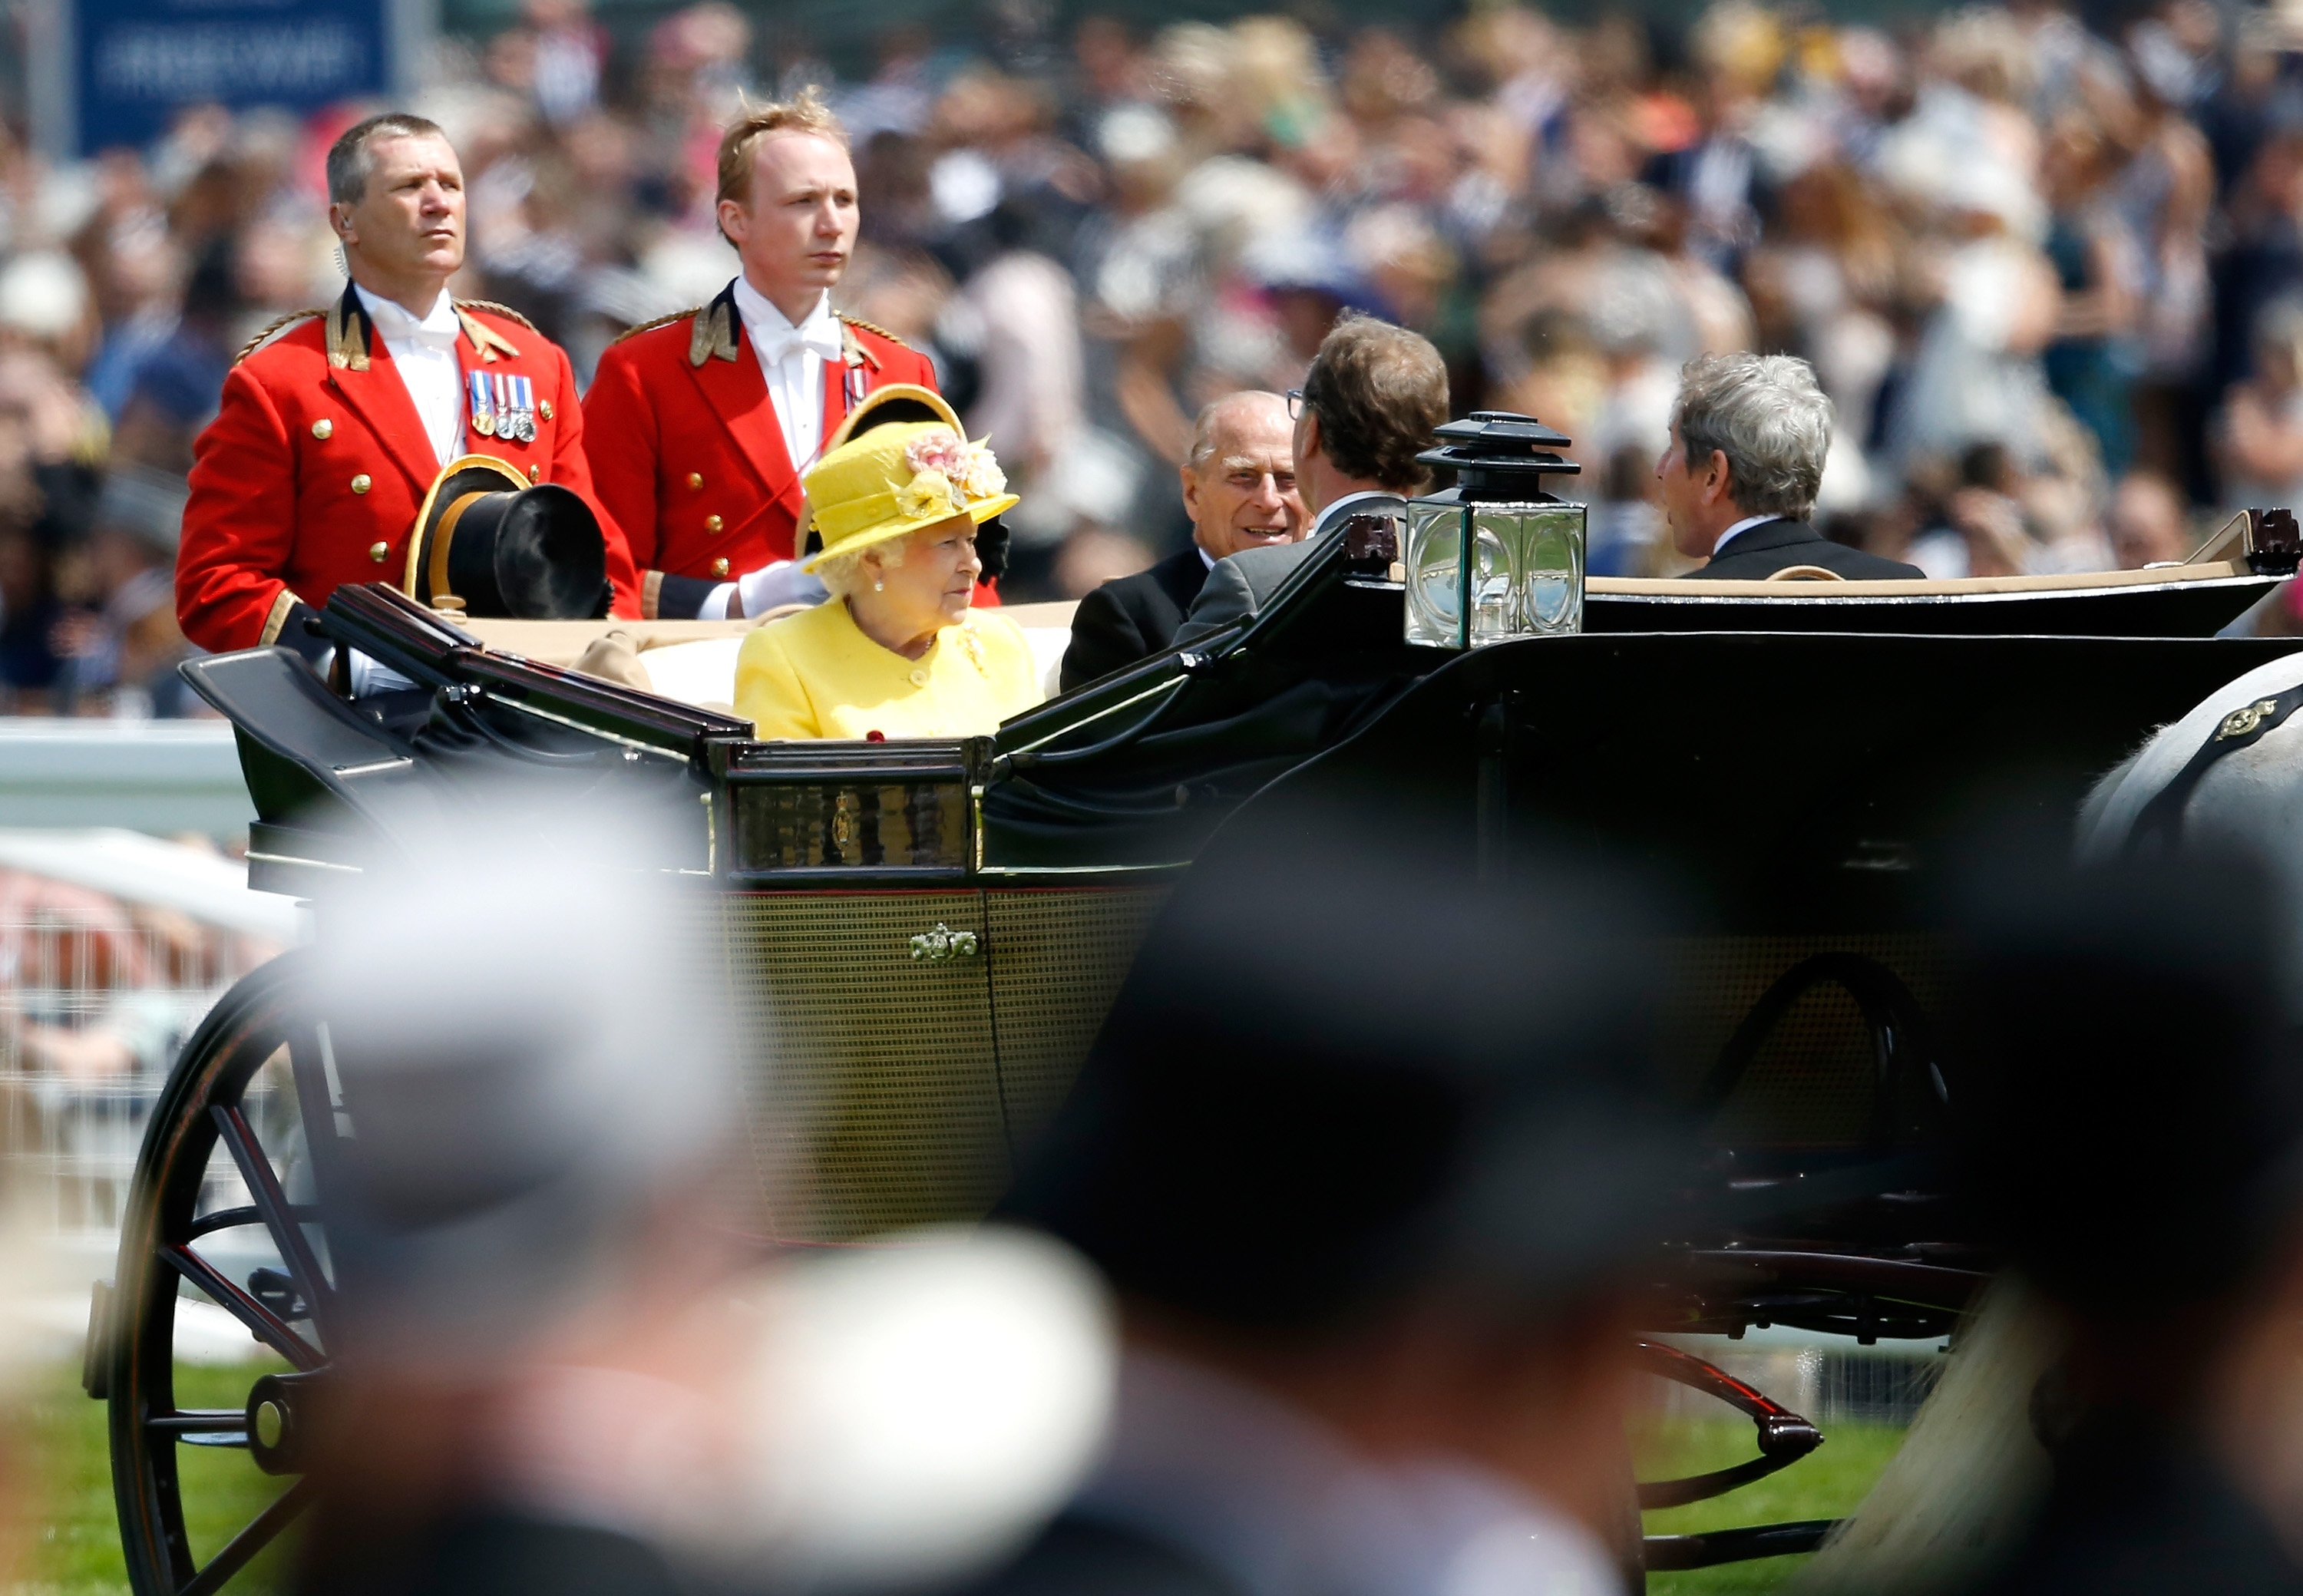 Royal Ascot 2015. - Página 5 Royal-ascot-2015-day-4-20150619-135103-049